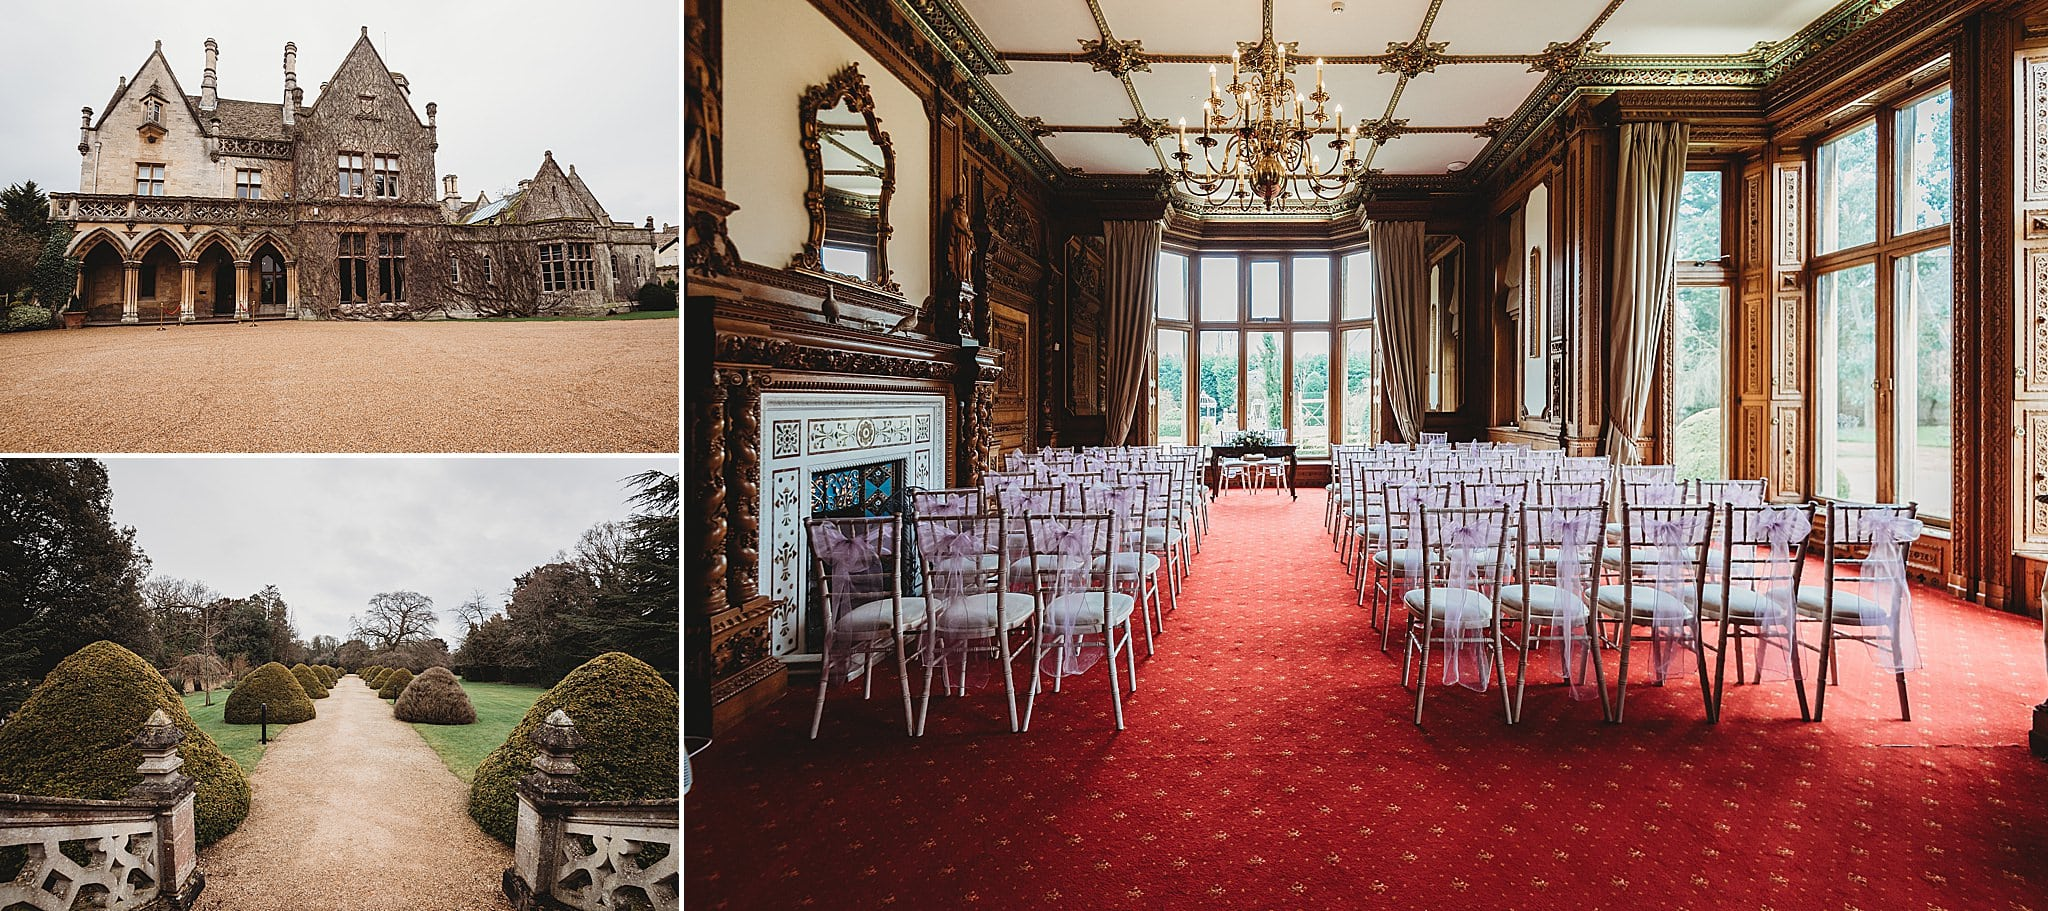 A collage of images of Manor by the lake wedding venue showing the outside of the building, the grounds and the inside all set up for a wedding with chairs for the guests